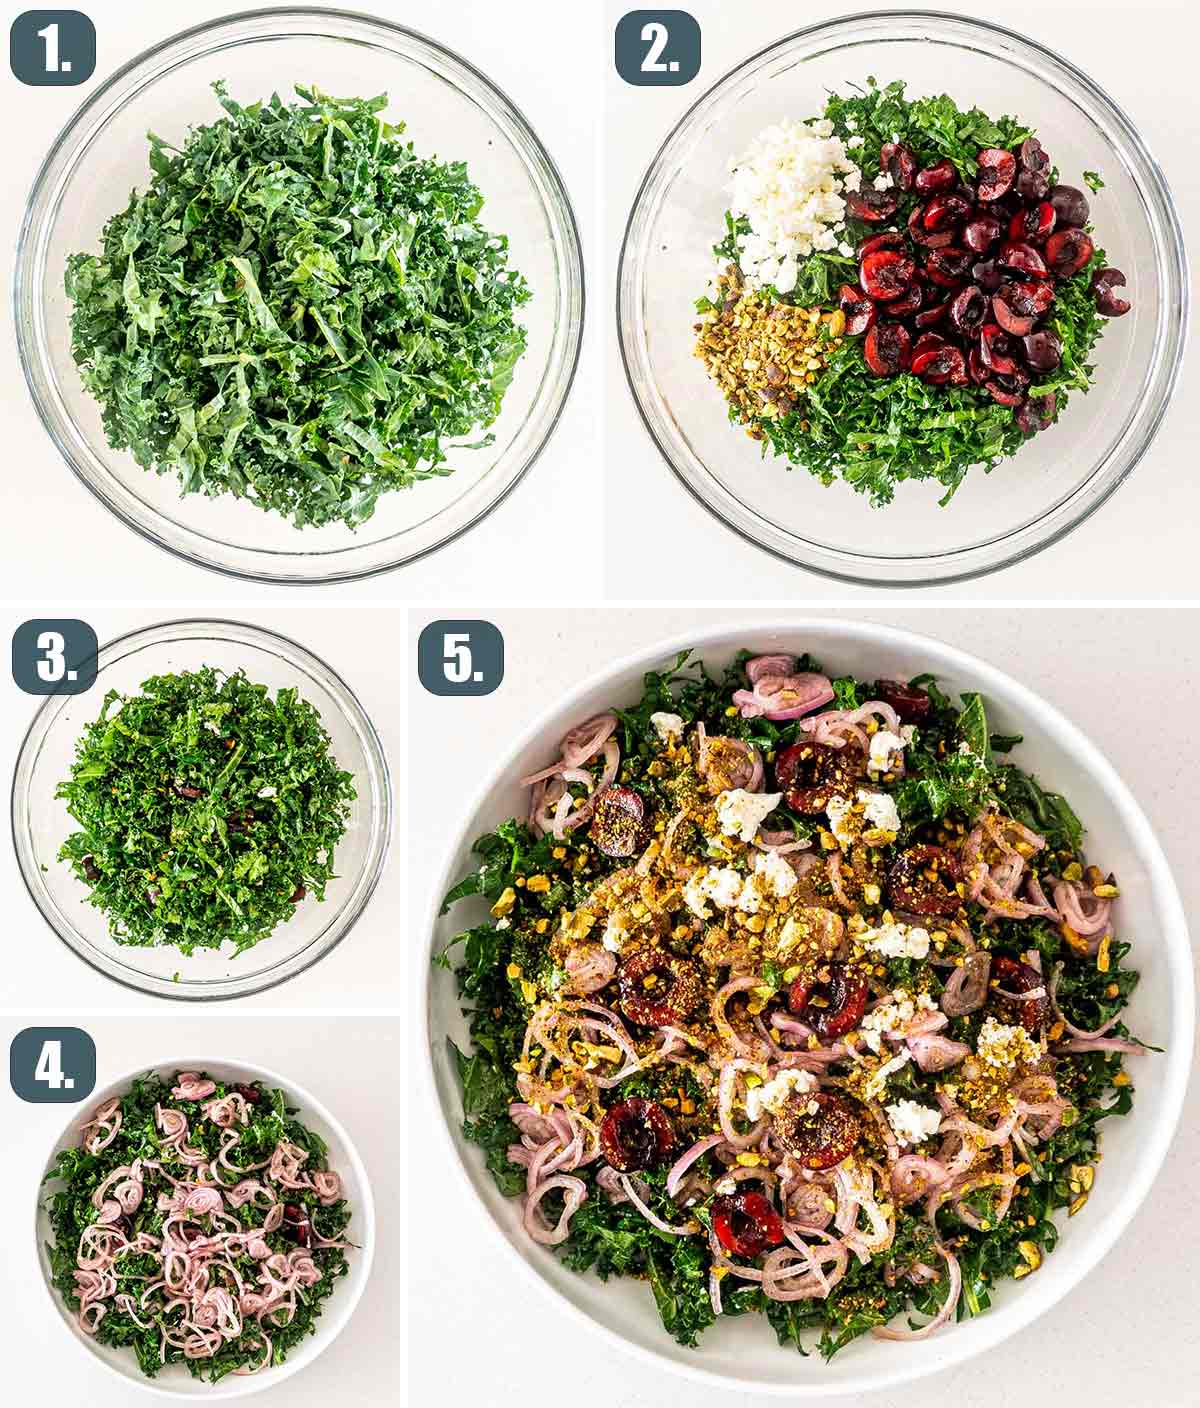 detailed process shots showing how to make kale cherry salad.